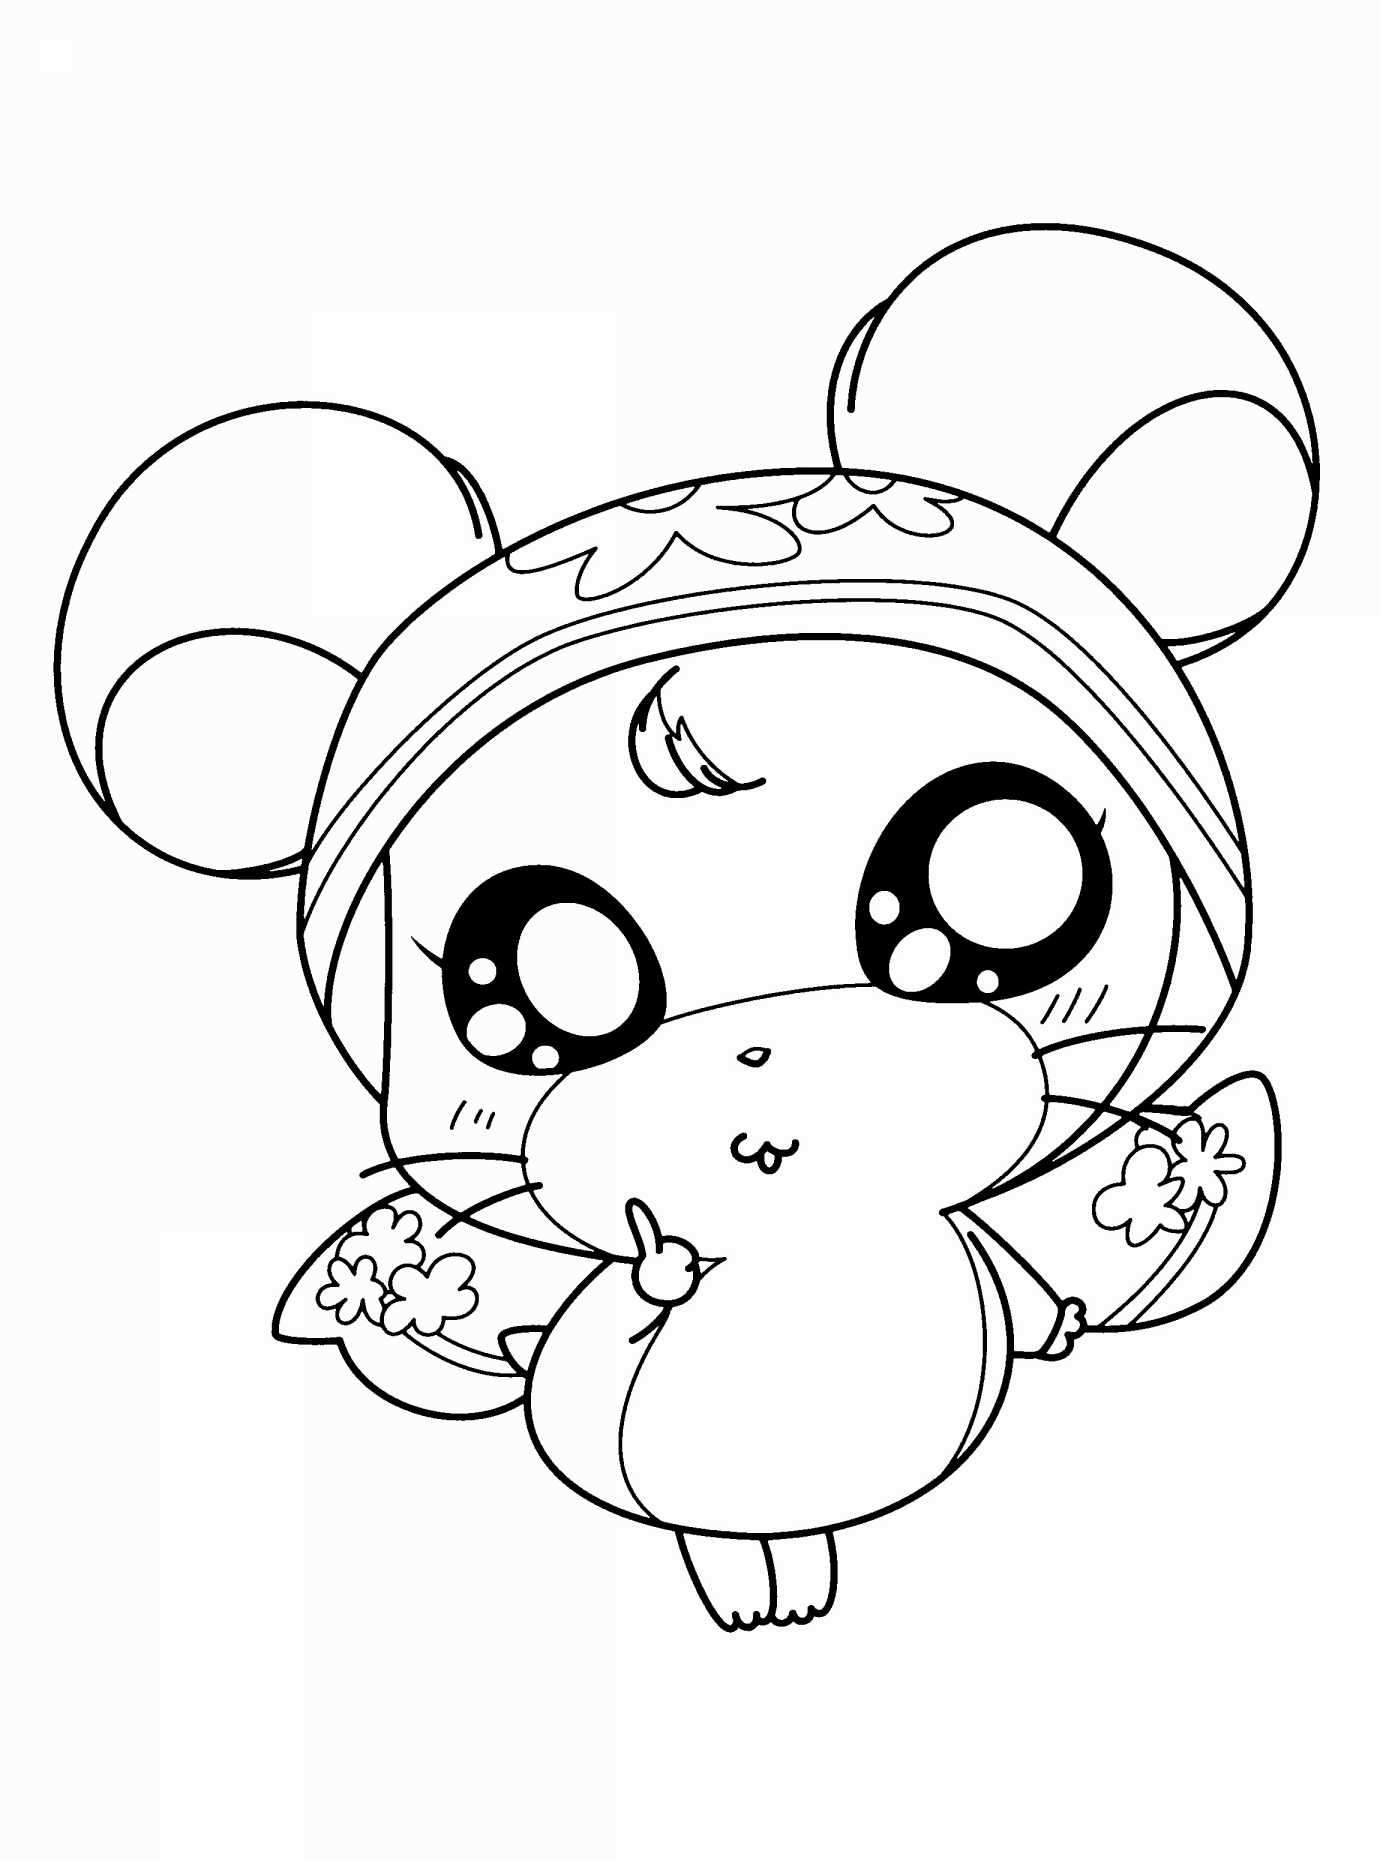 Disney Princess Christmas Coloring Pages Printable With